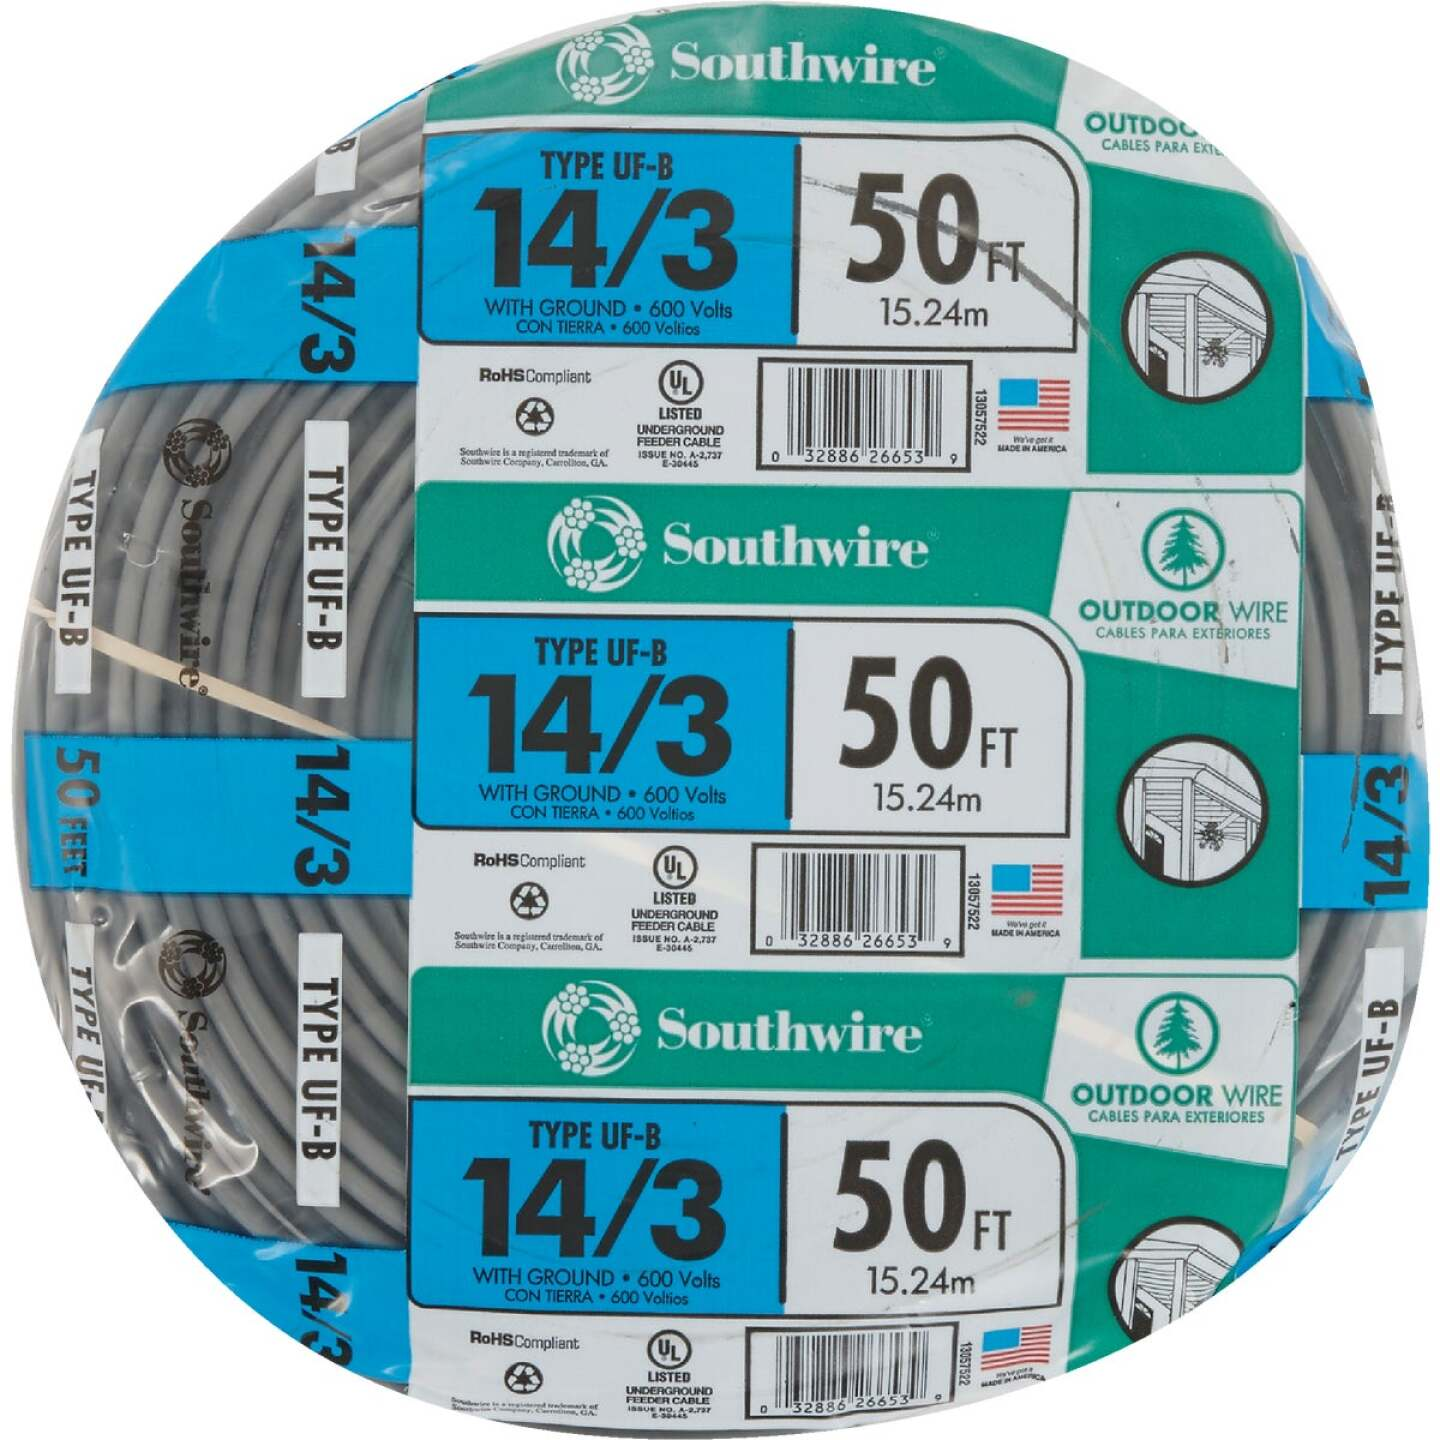 Southwire 50 Ft. 14 AWG 3-Conductor UFW/G Wire Image 2